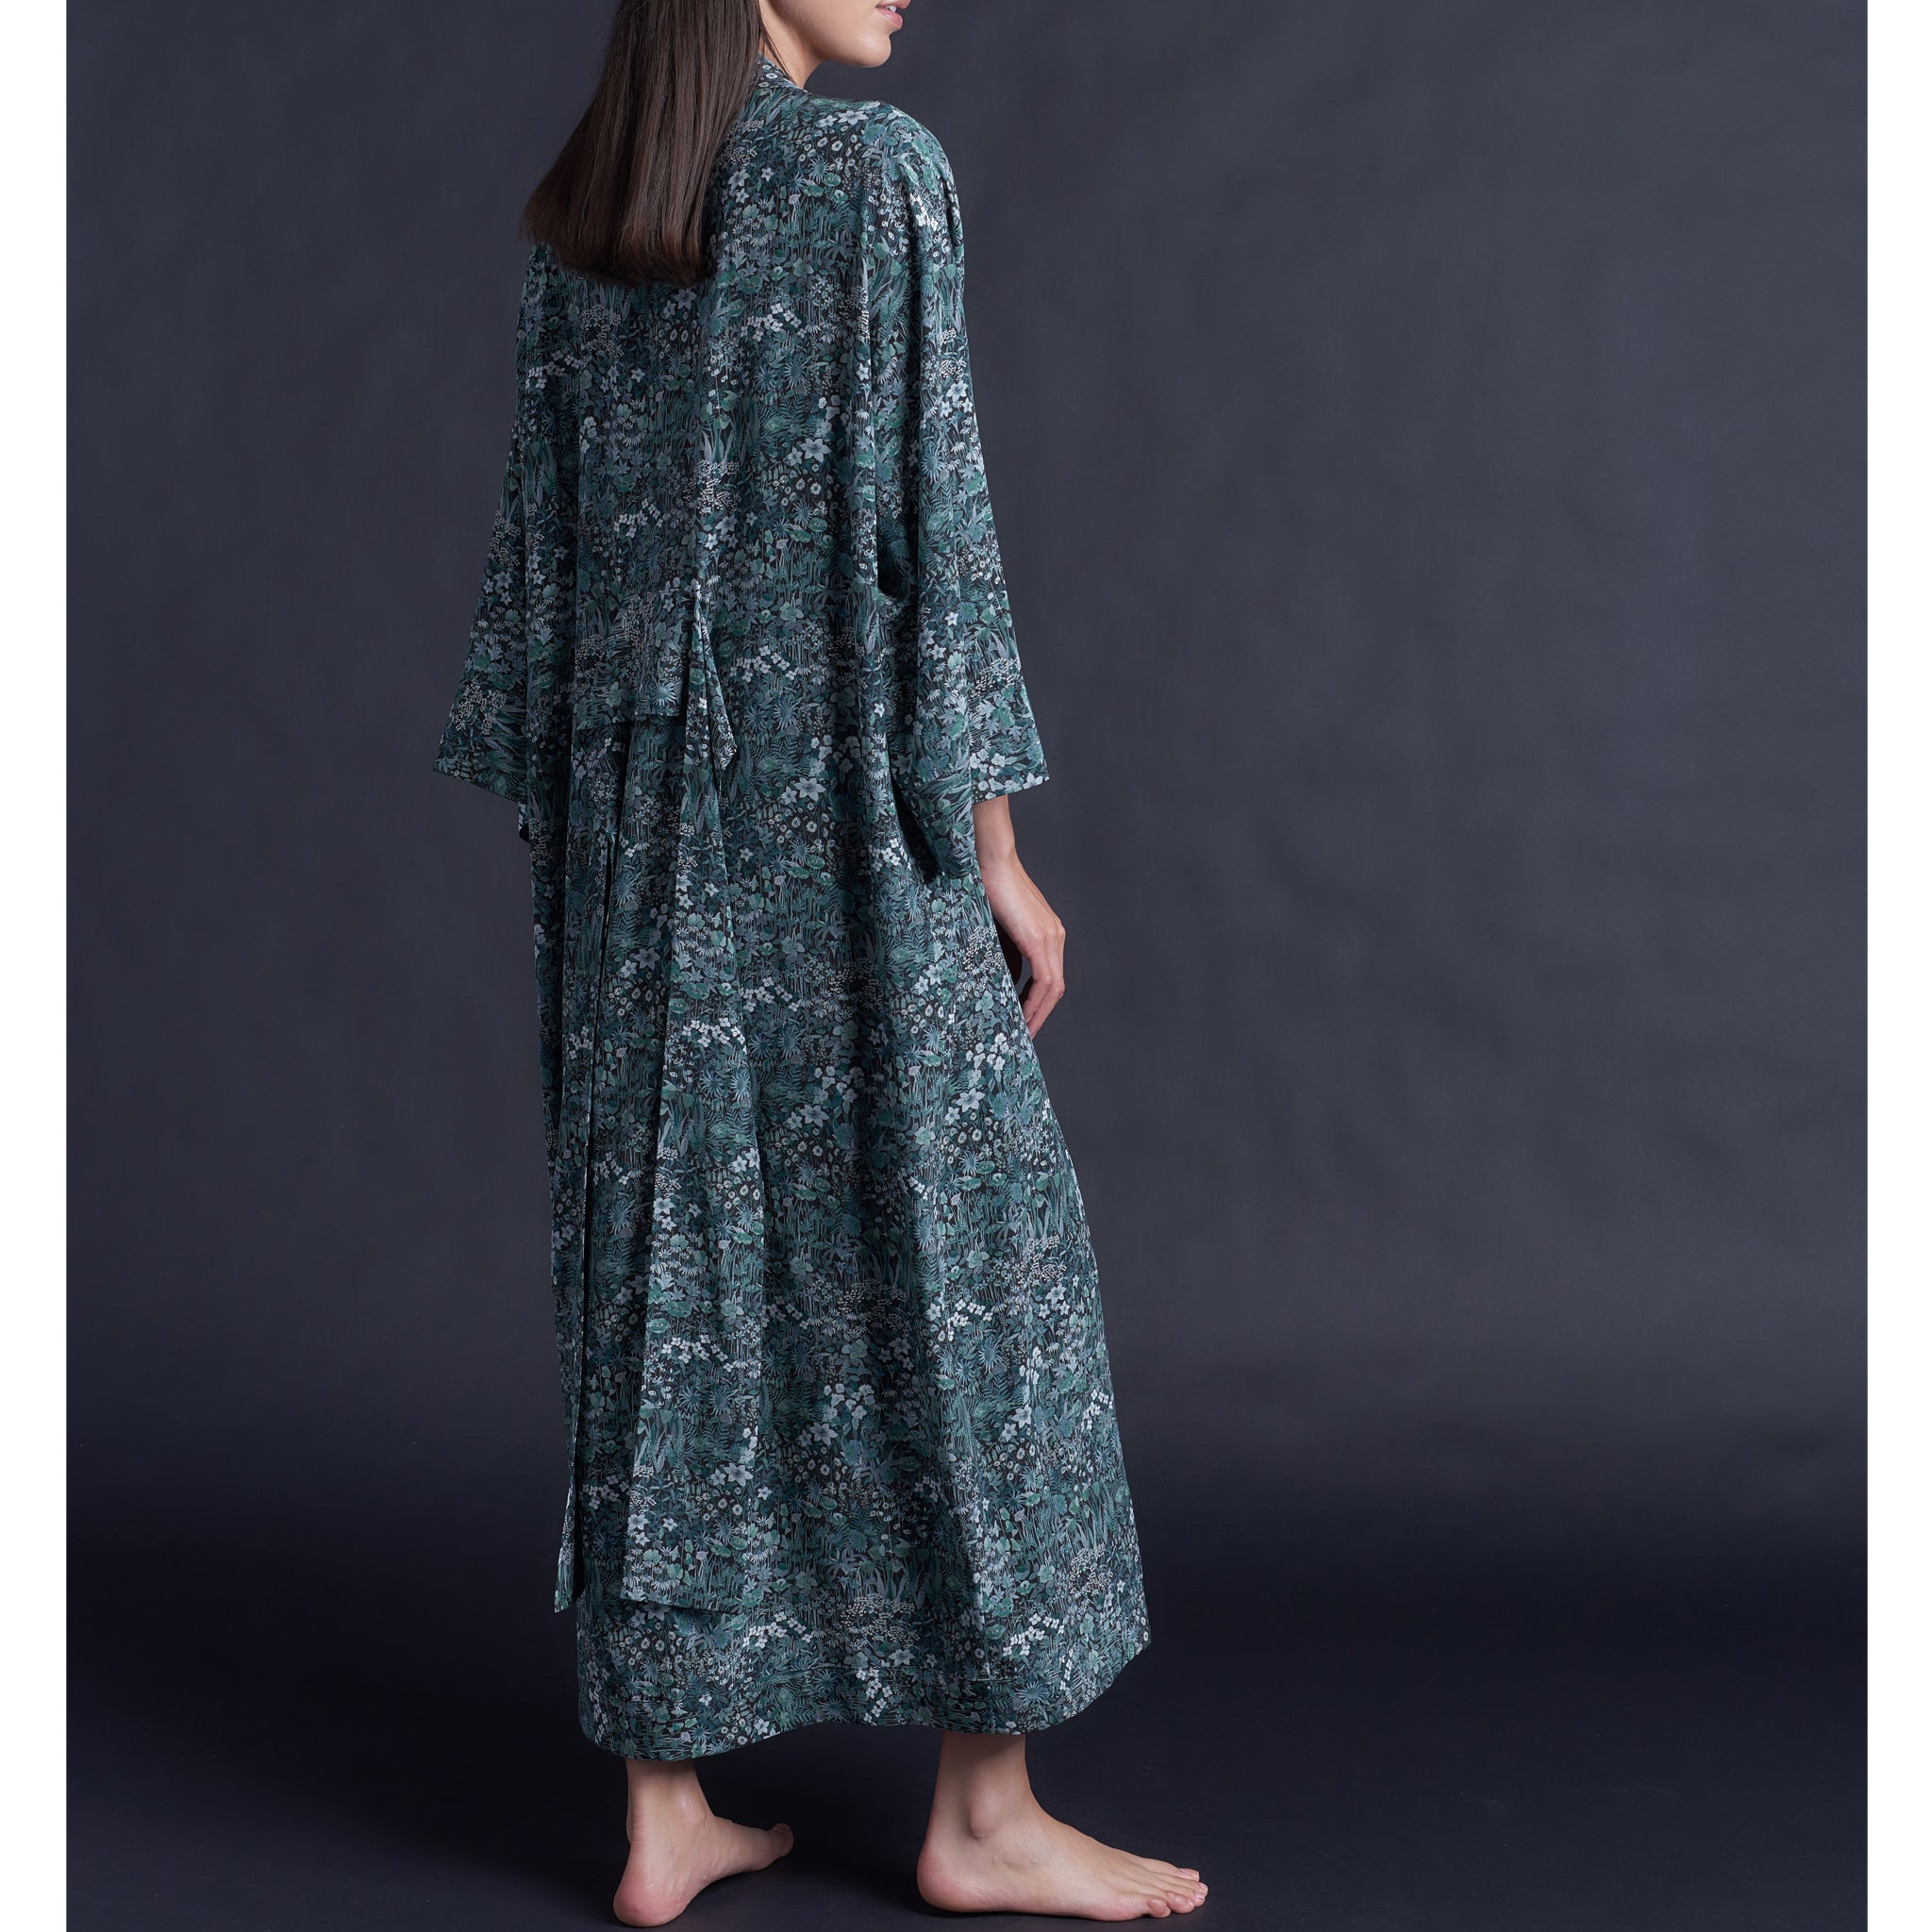 Asteria Kimono Robe in Liberty of London Faria Flowers Silk Crepe De Chine